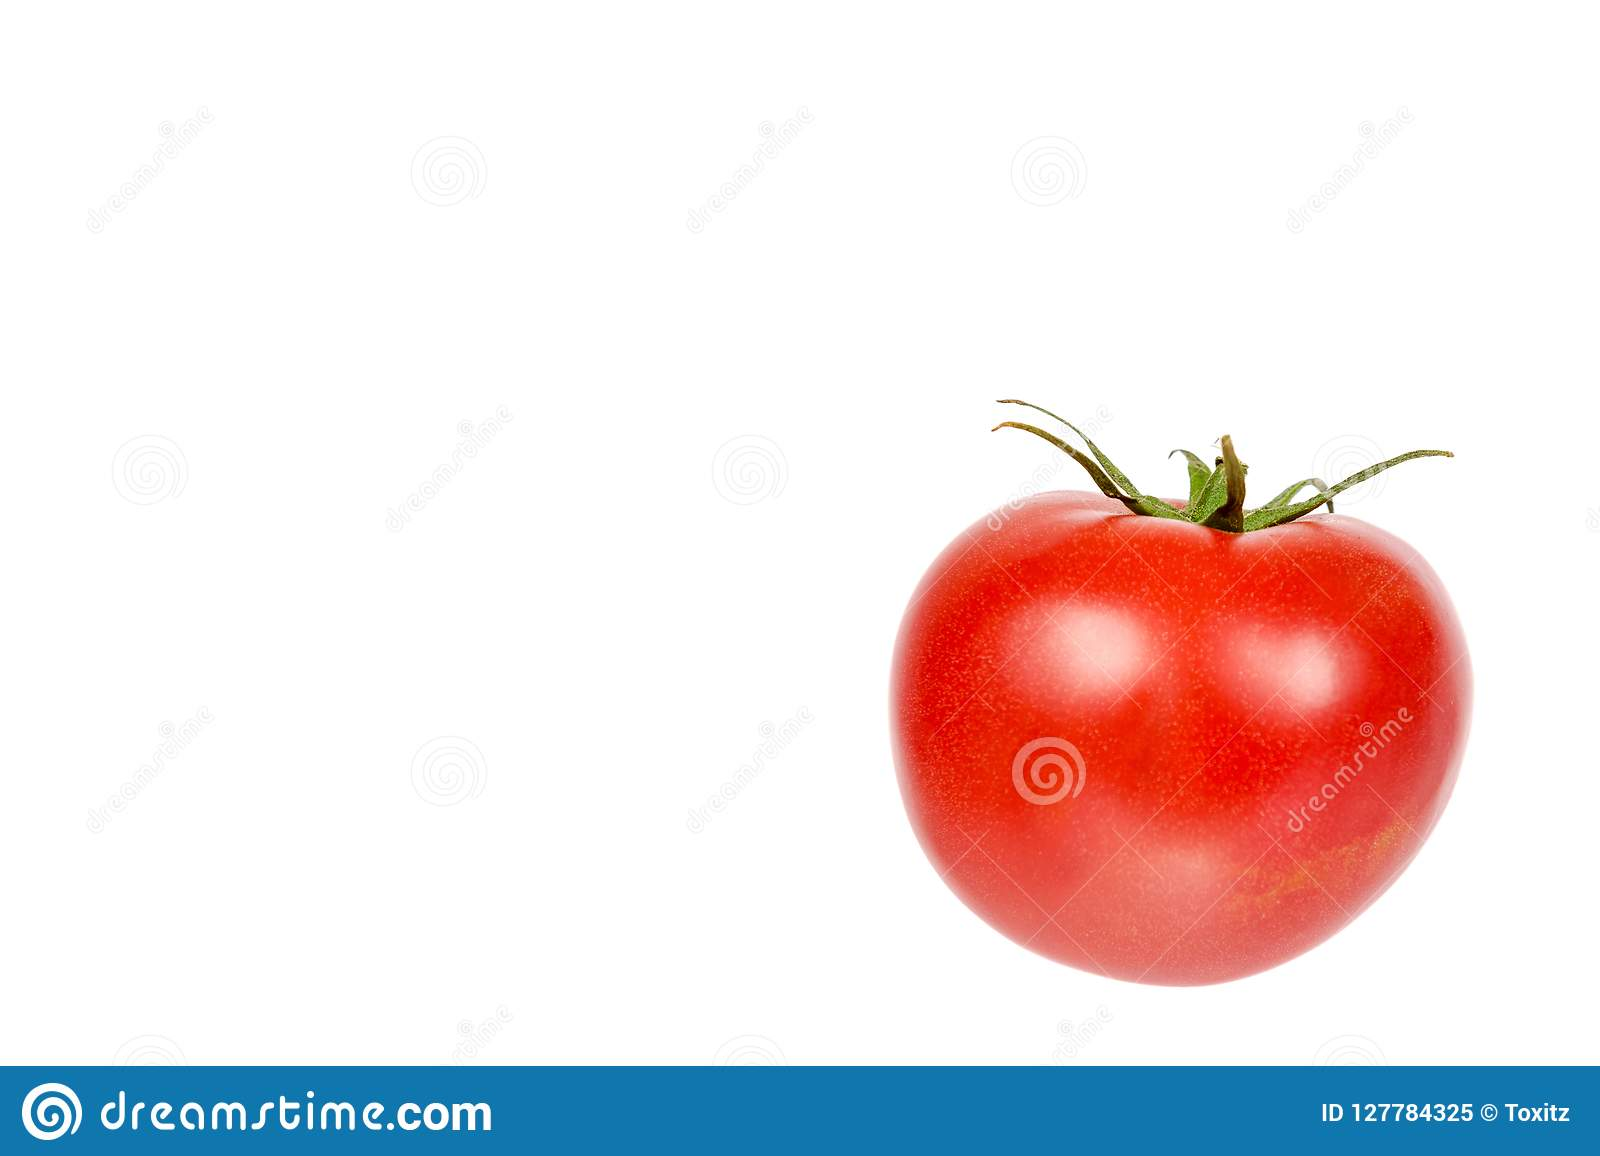 fresh whole raw red tomato with green leaf isolated on white